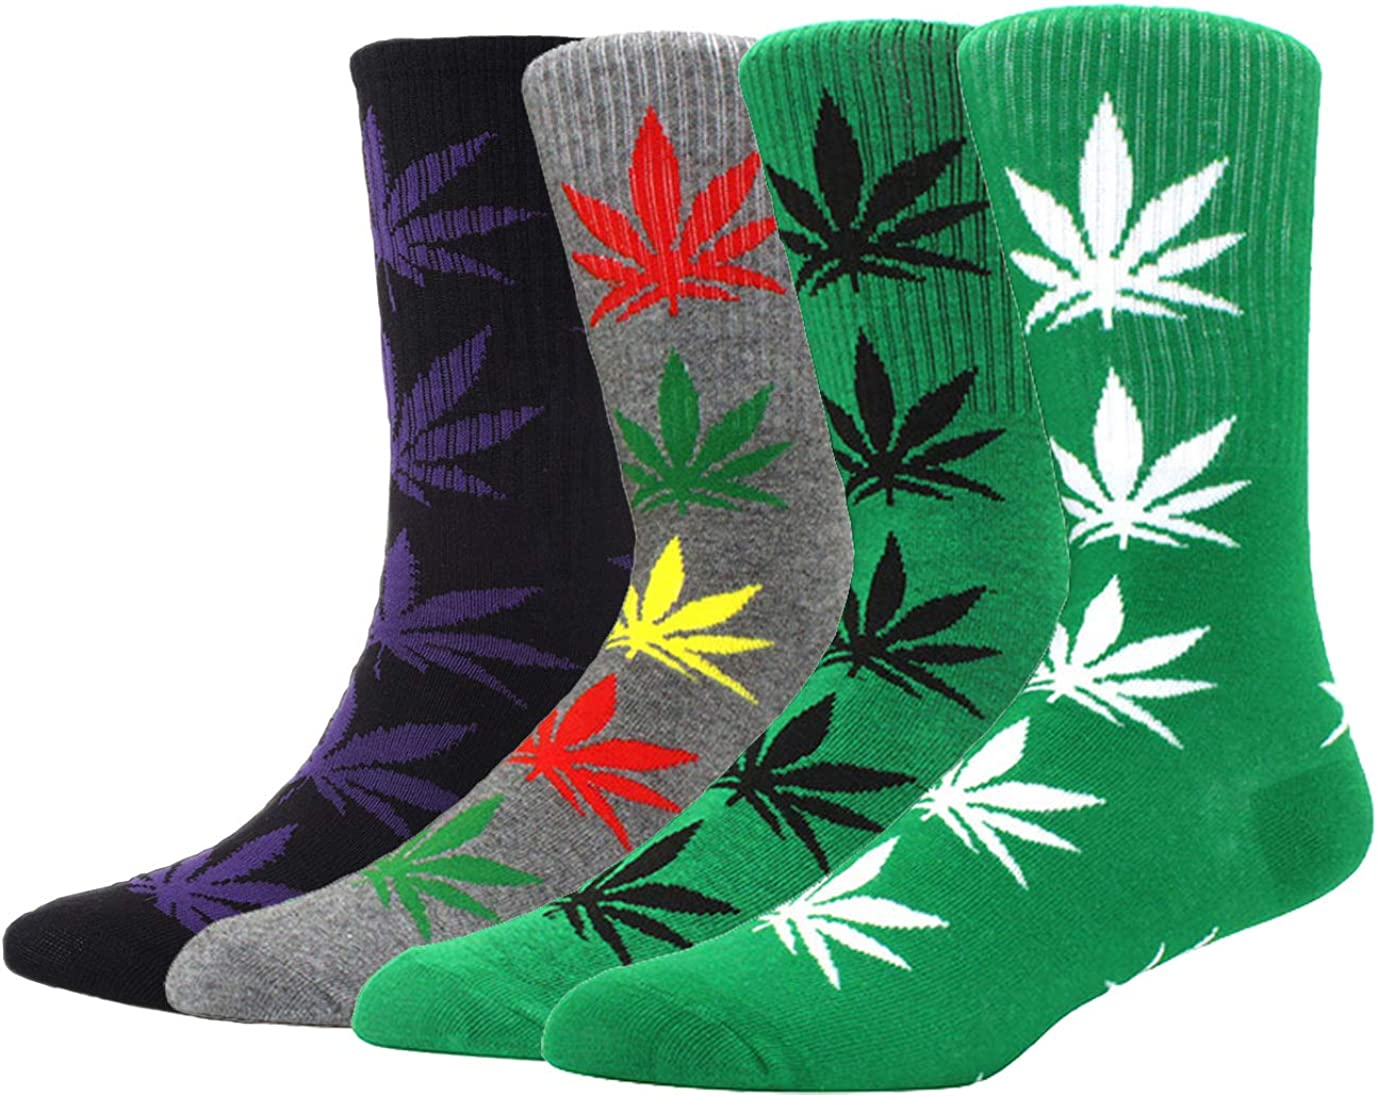 4 Animer and price revision Luxury Pairs Pack Marijuana Weed Sports Cotton Athletic Leaf Printed